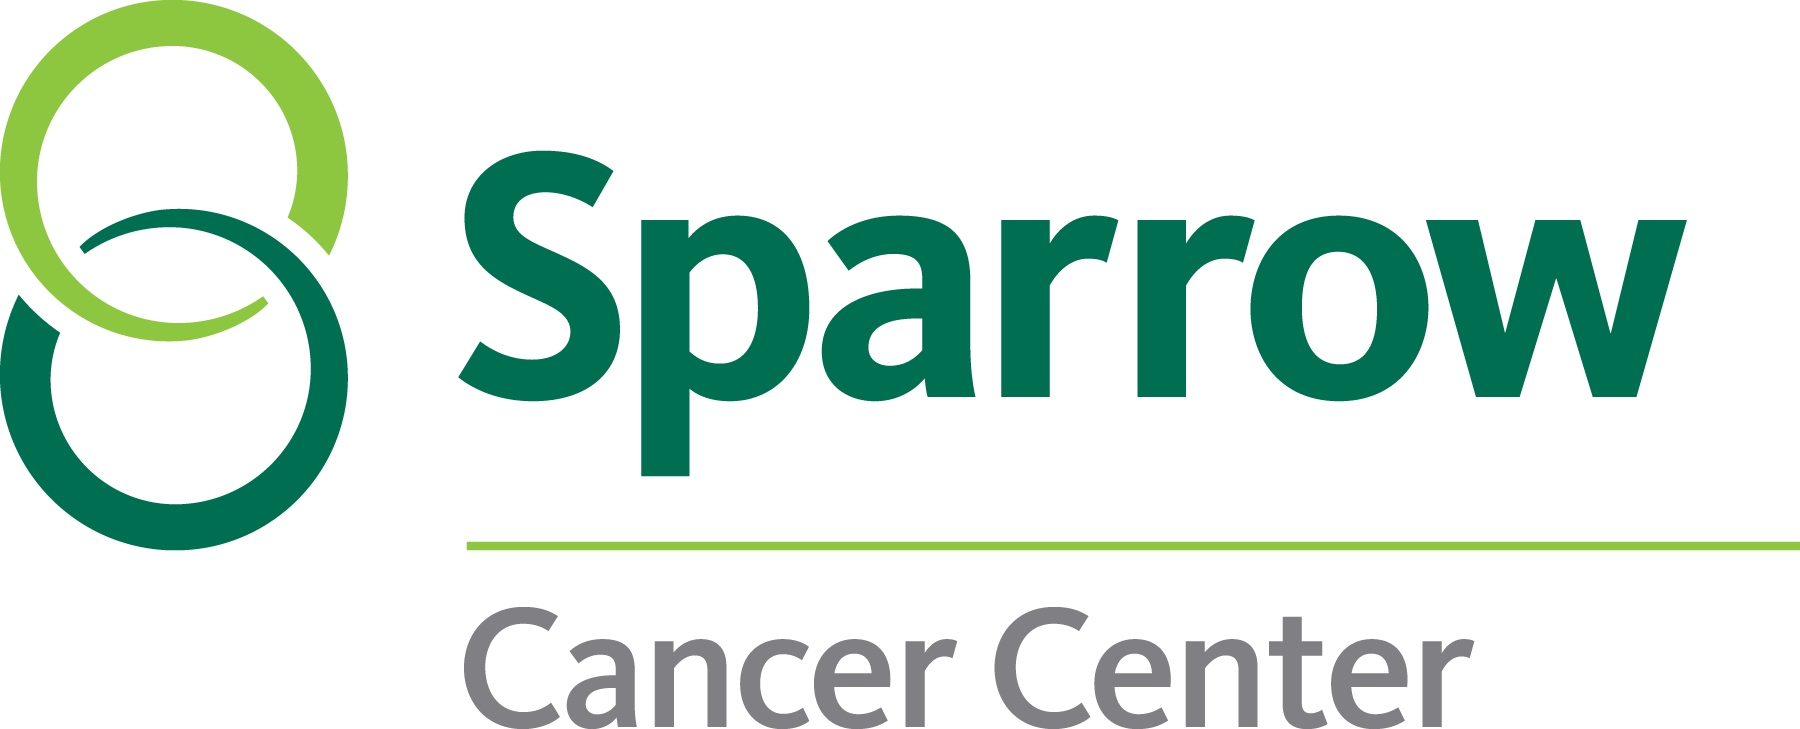 Sparrow Cancer Center